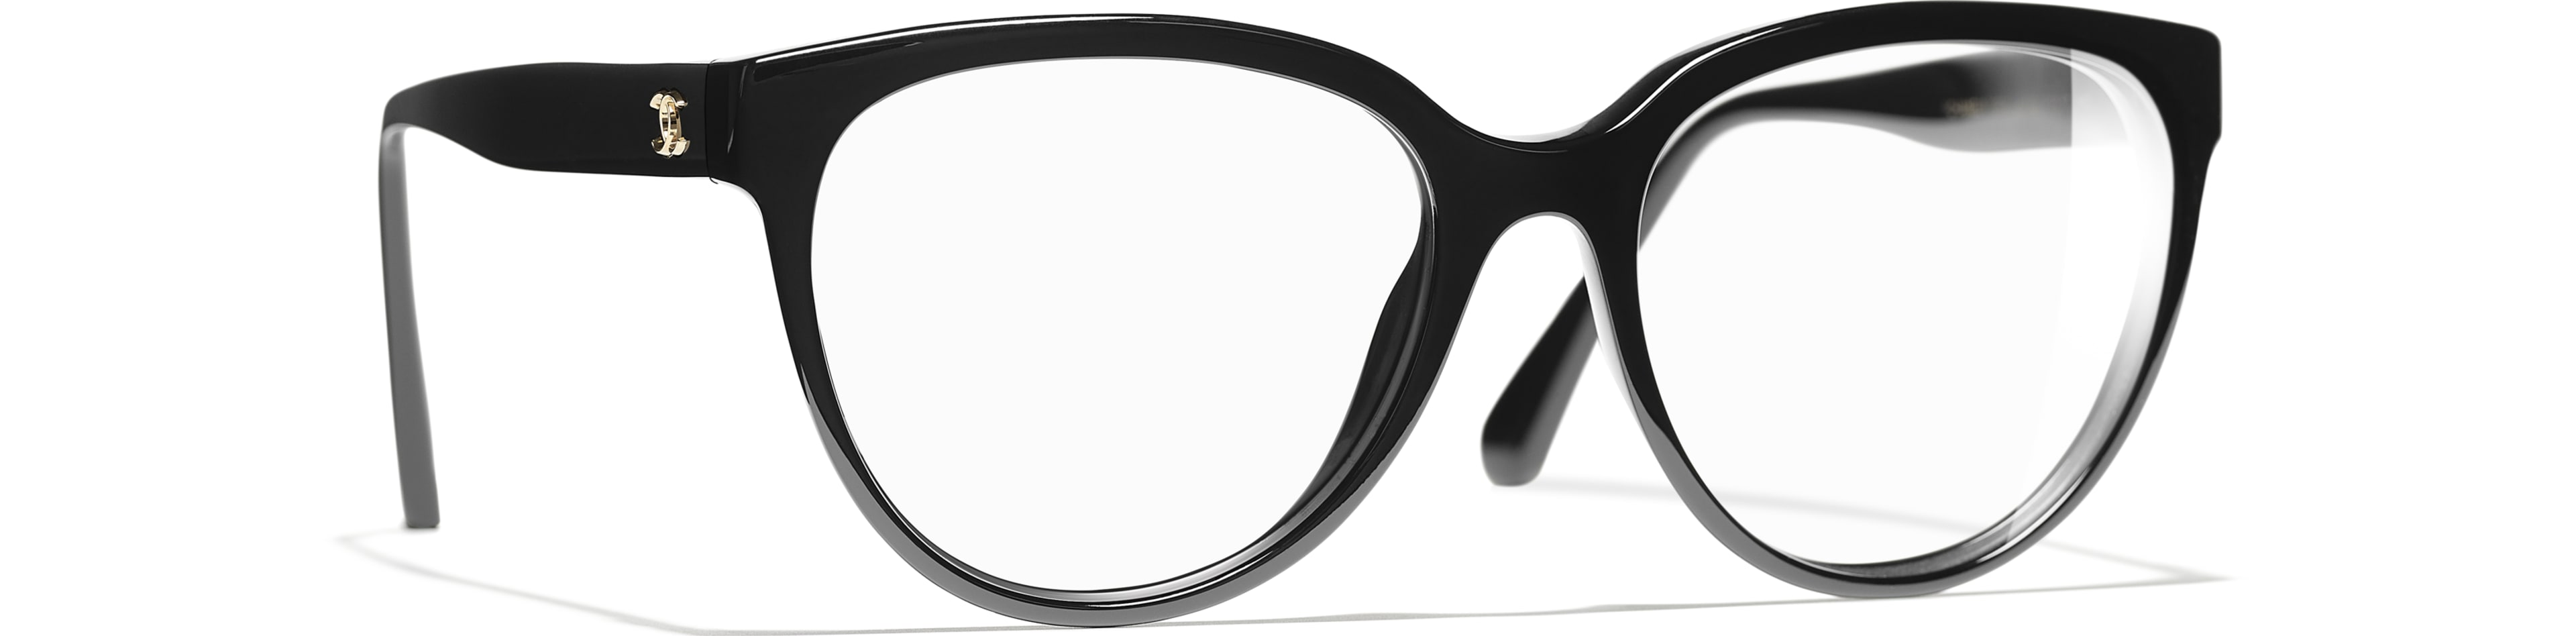 Acetate black frame.